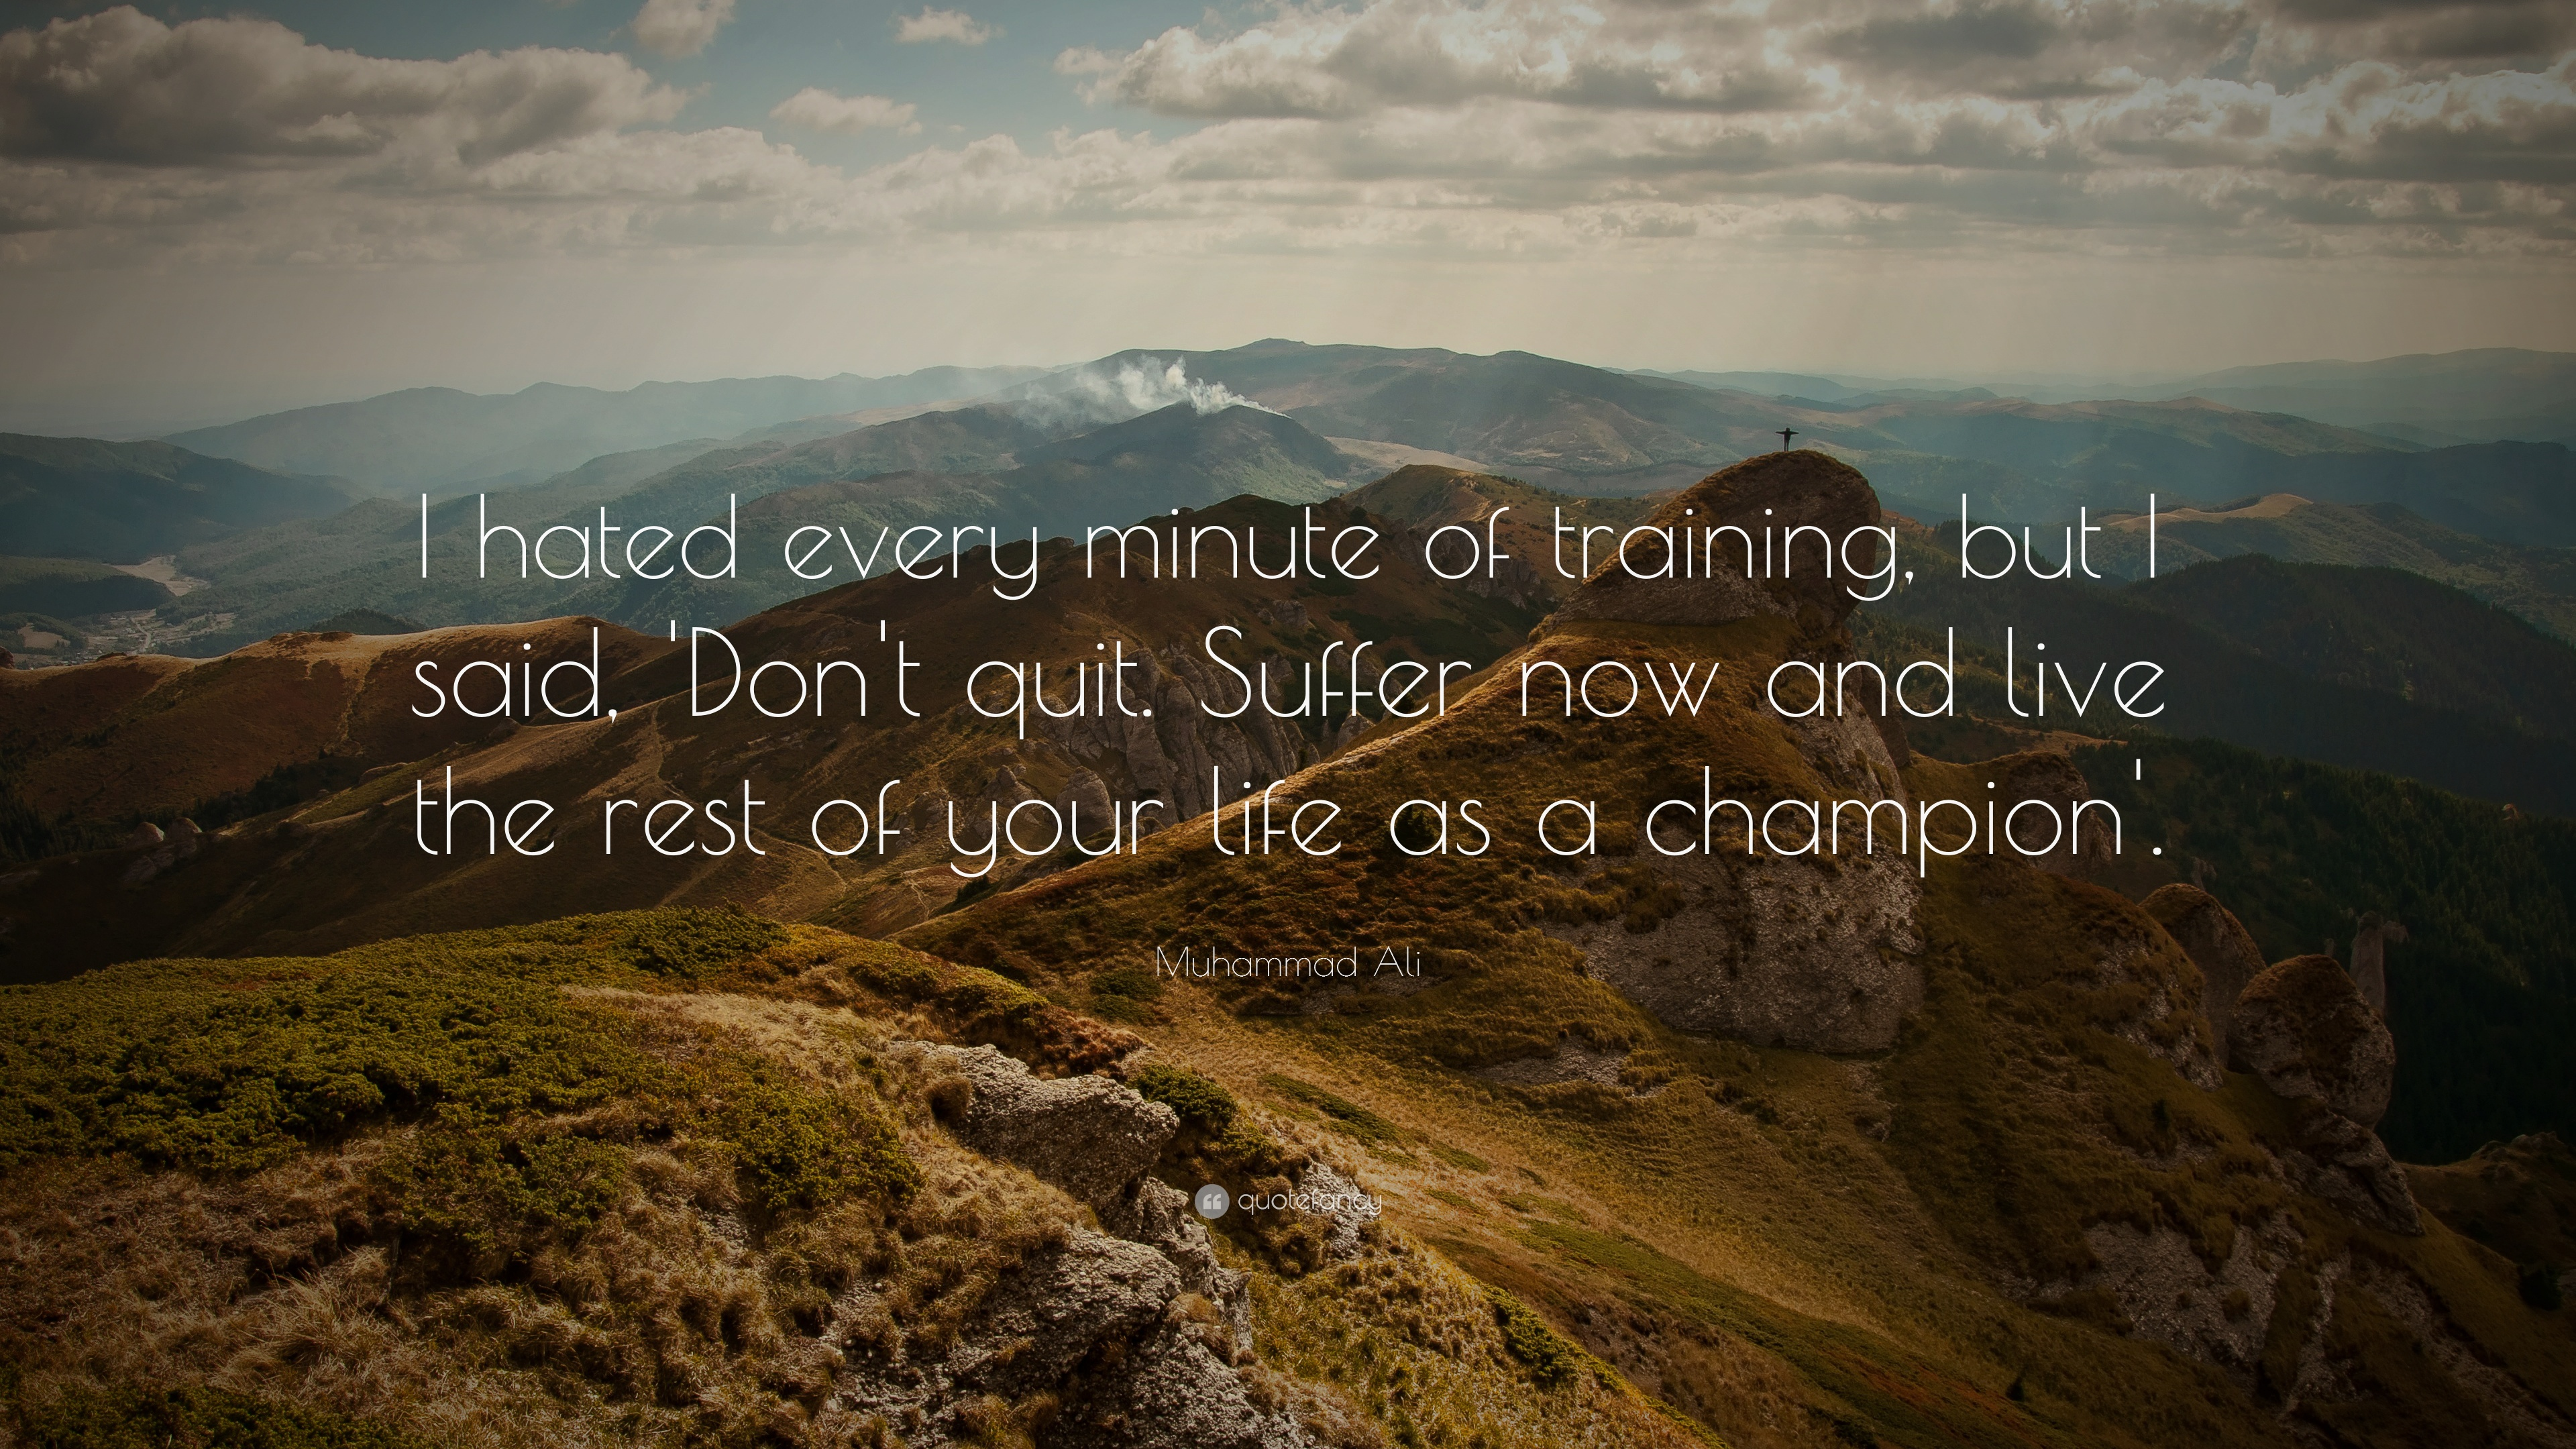 4710-muhammad-ali-quote-i-hated-every-minute-of-training-but-i-said-don